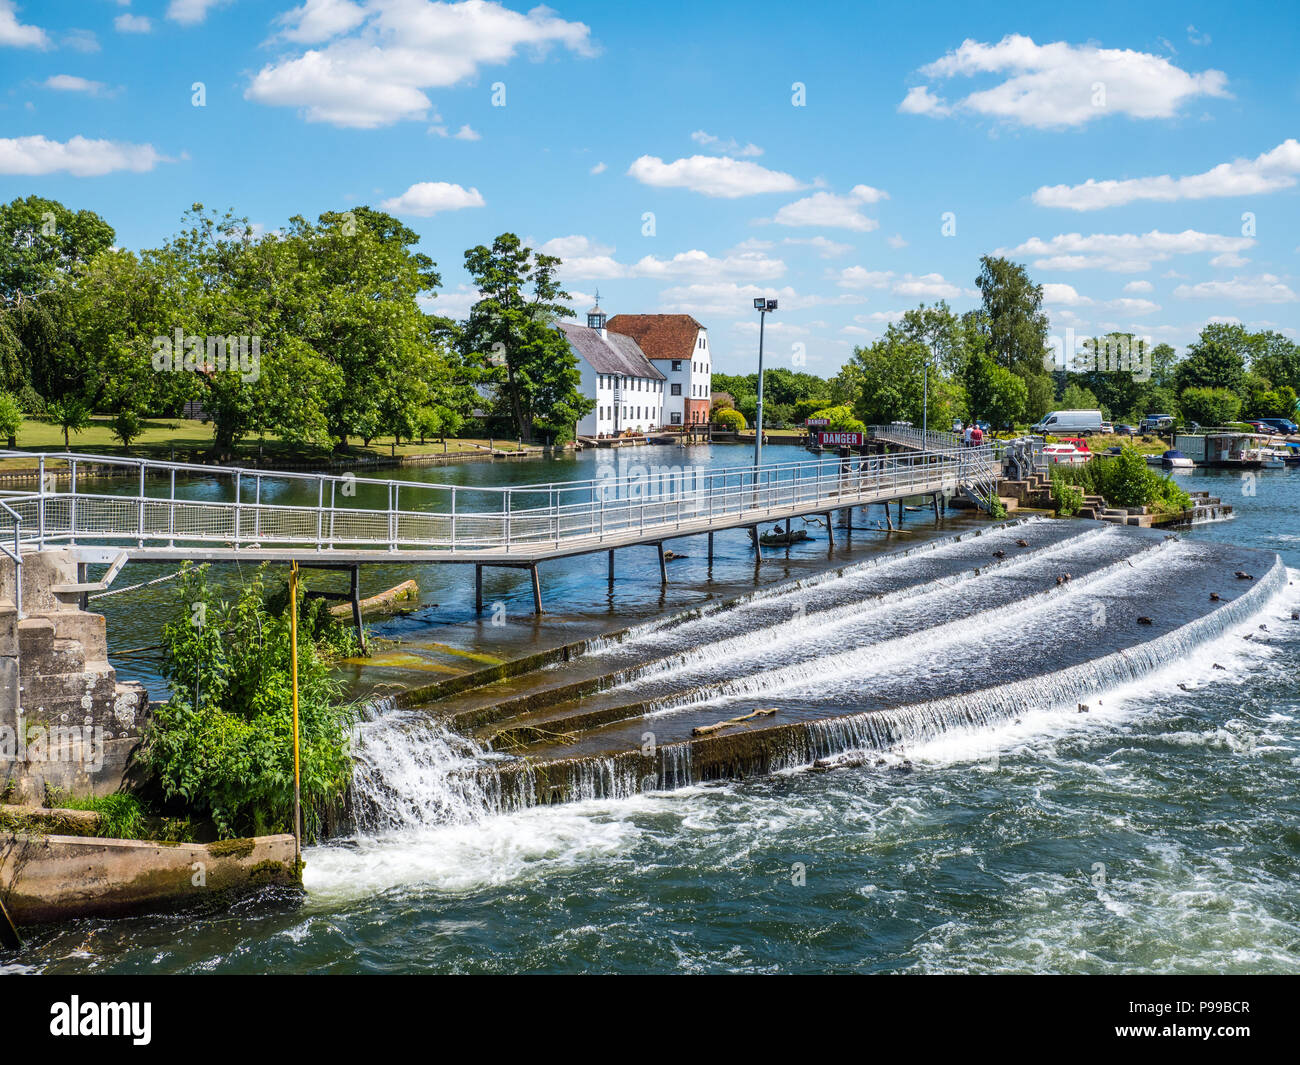 Wier, Hambleden Lock and Weir, River Thames, Berkshire, England, UK, GB. - Stock Image